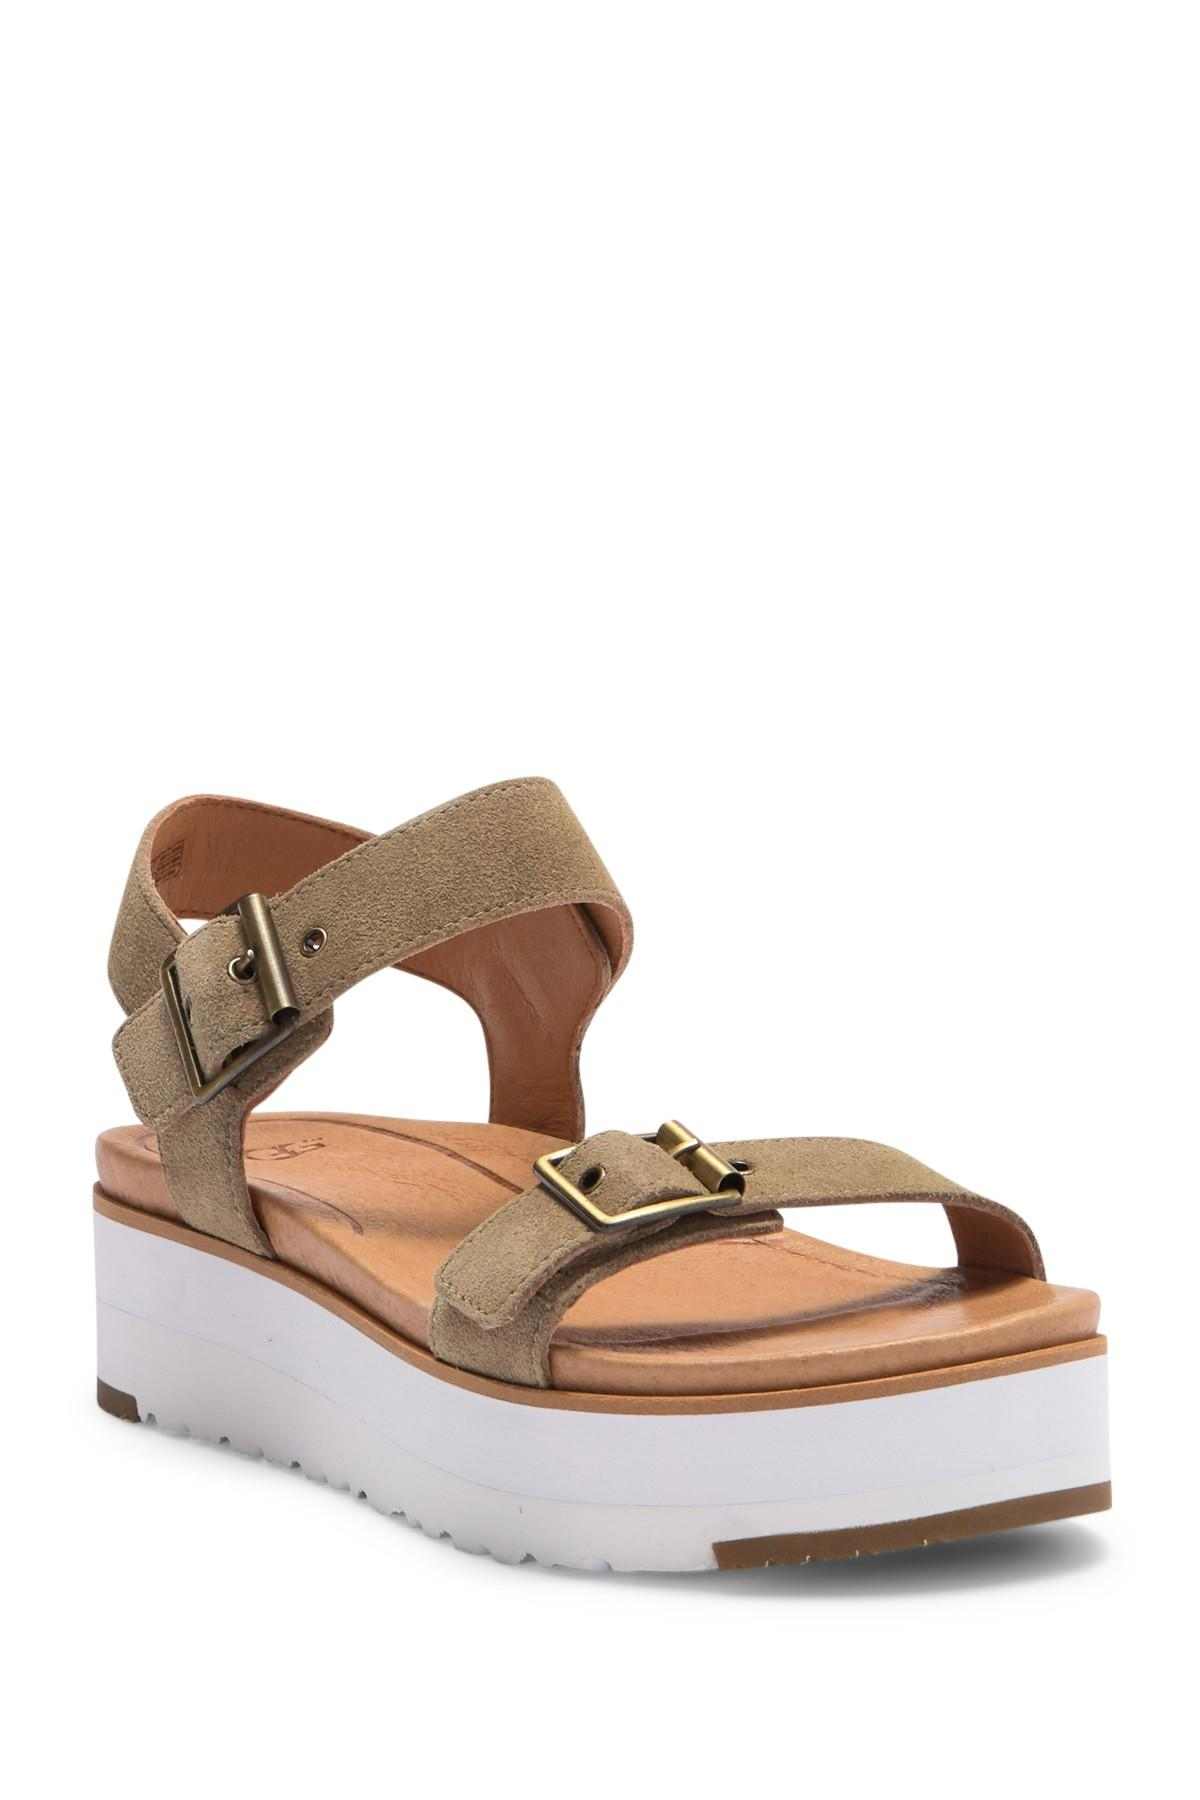 0d6f6b916f9 Lyst - UGG Angie Suede Platform Sandal in Brown - Save 13%